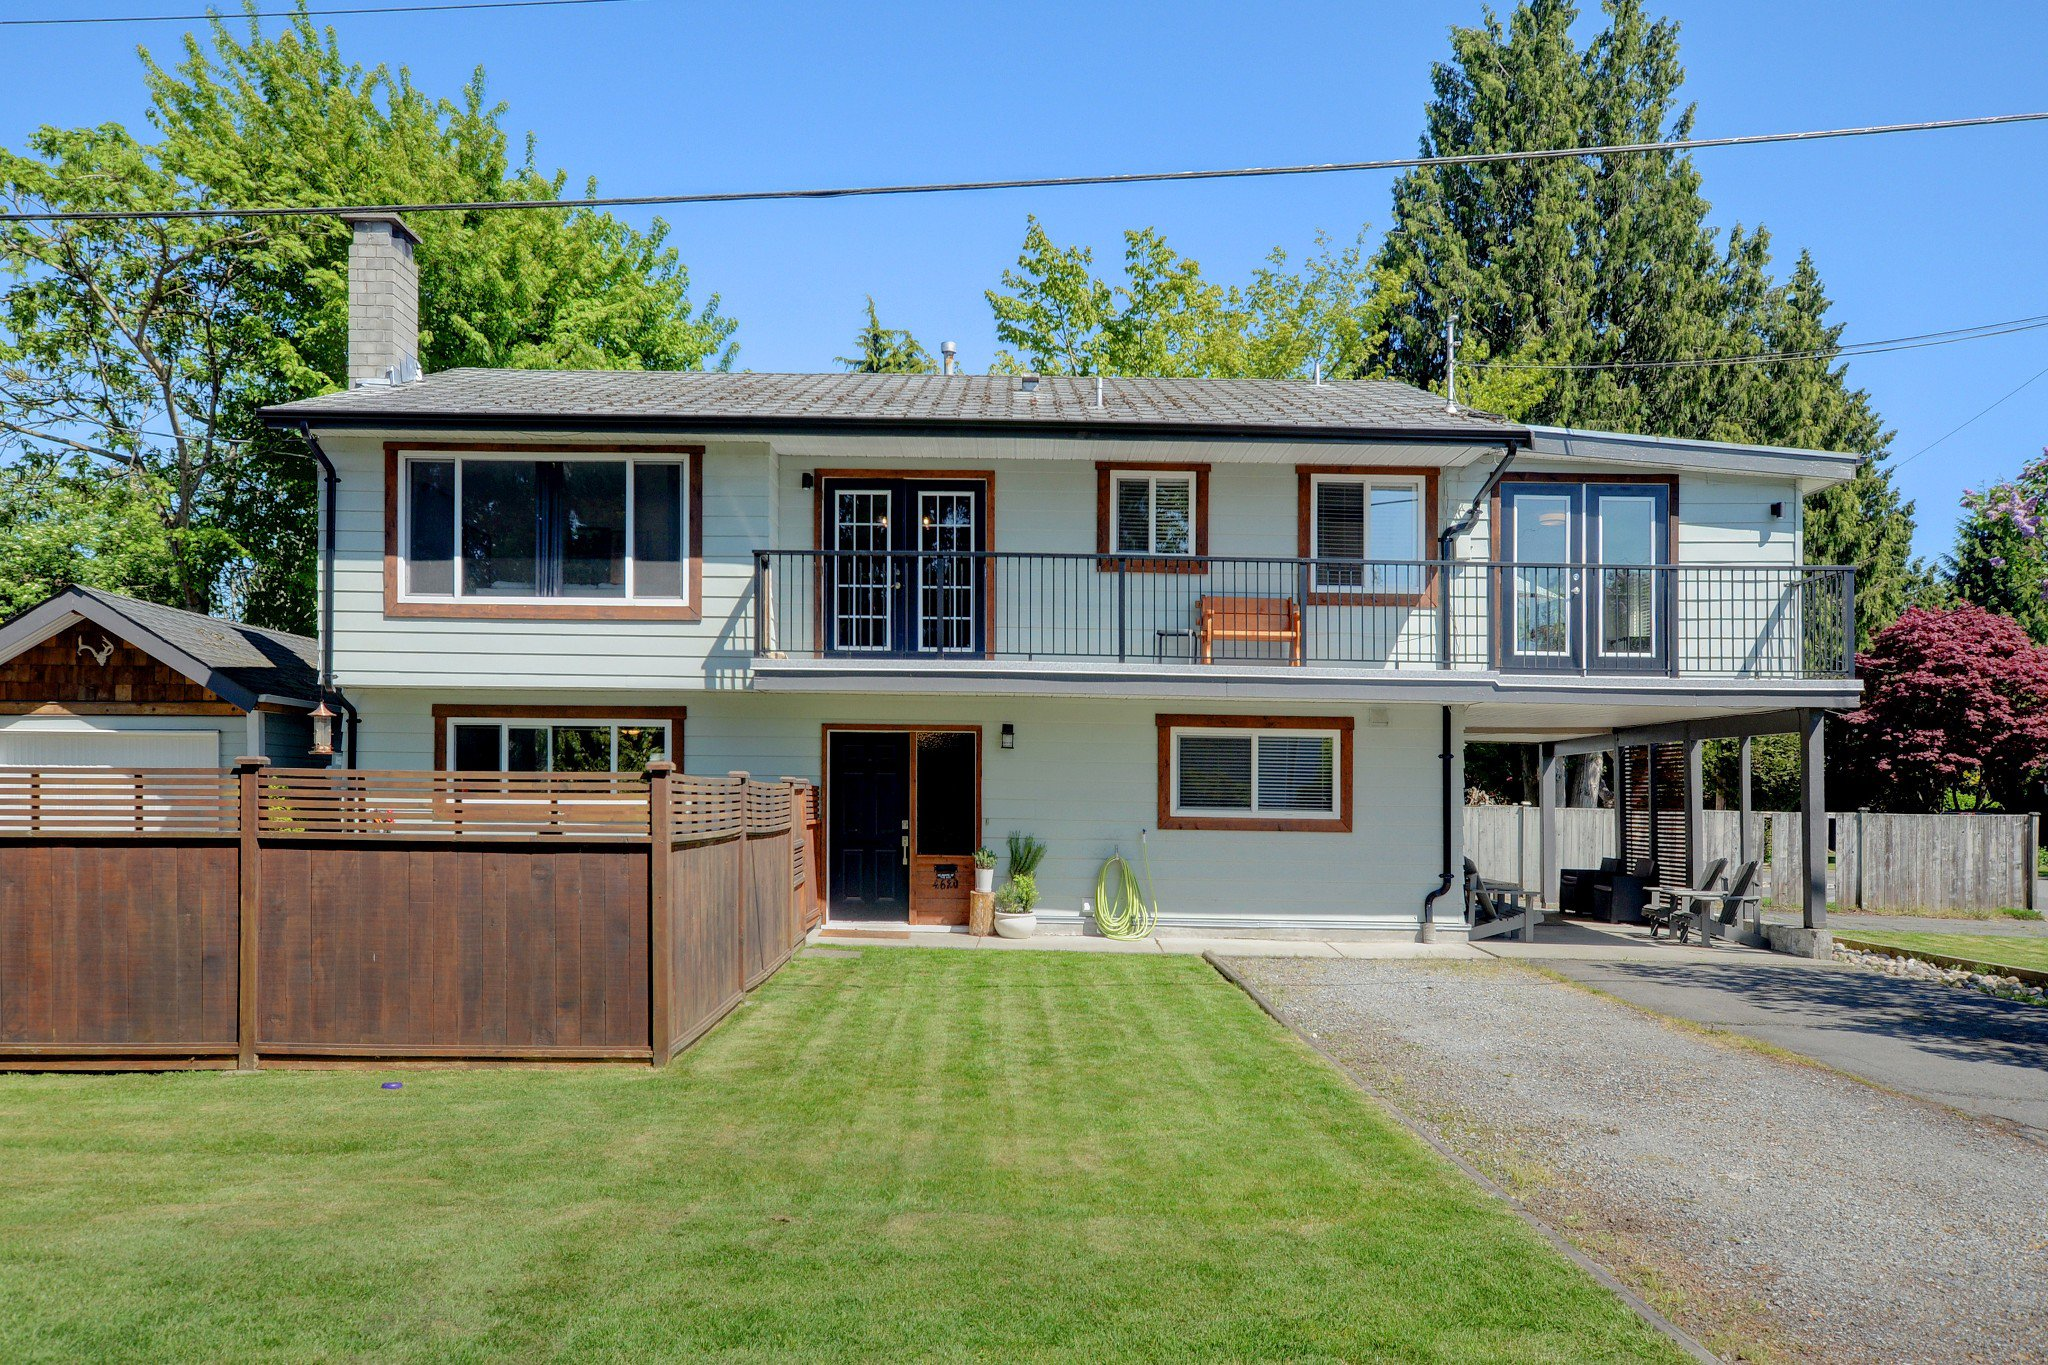 Main Photo: 4620 47A Street in Delta: Ladner Elementary House for sale (Ladner)  : MLS®# R2265312